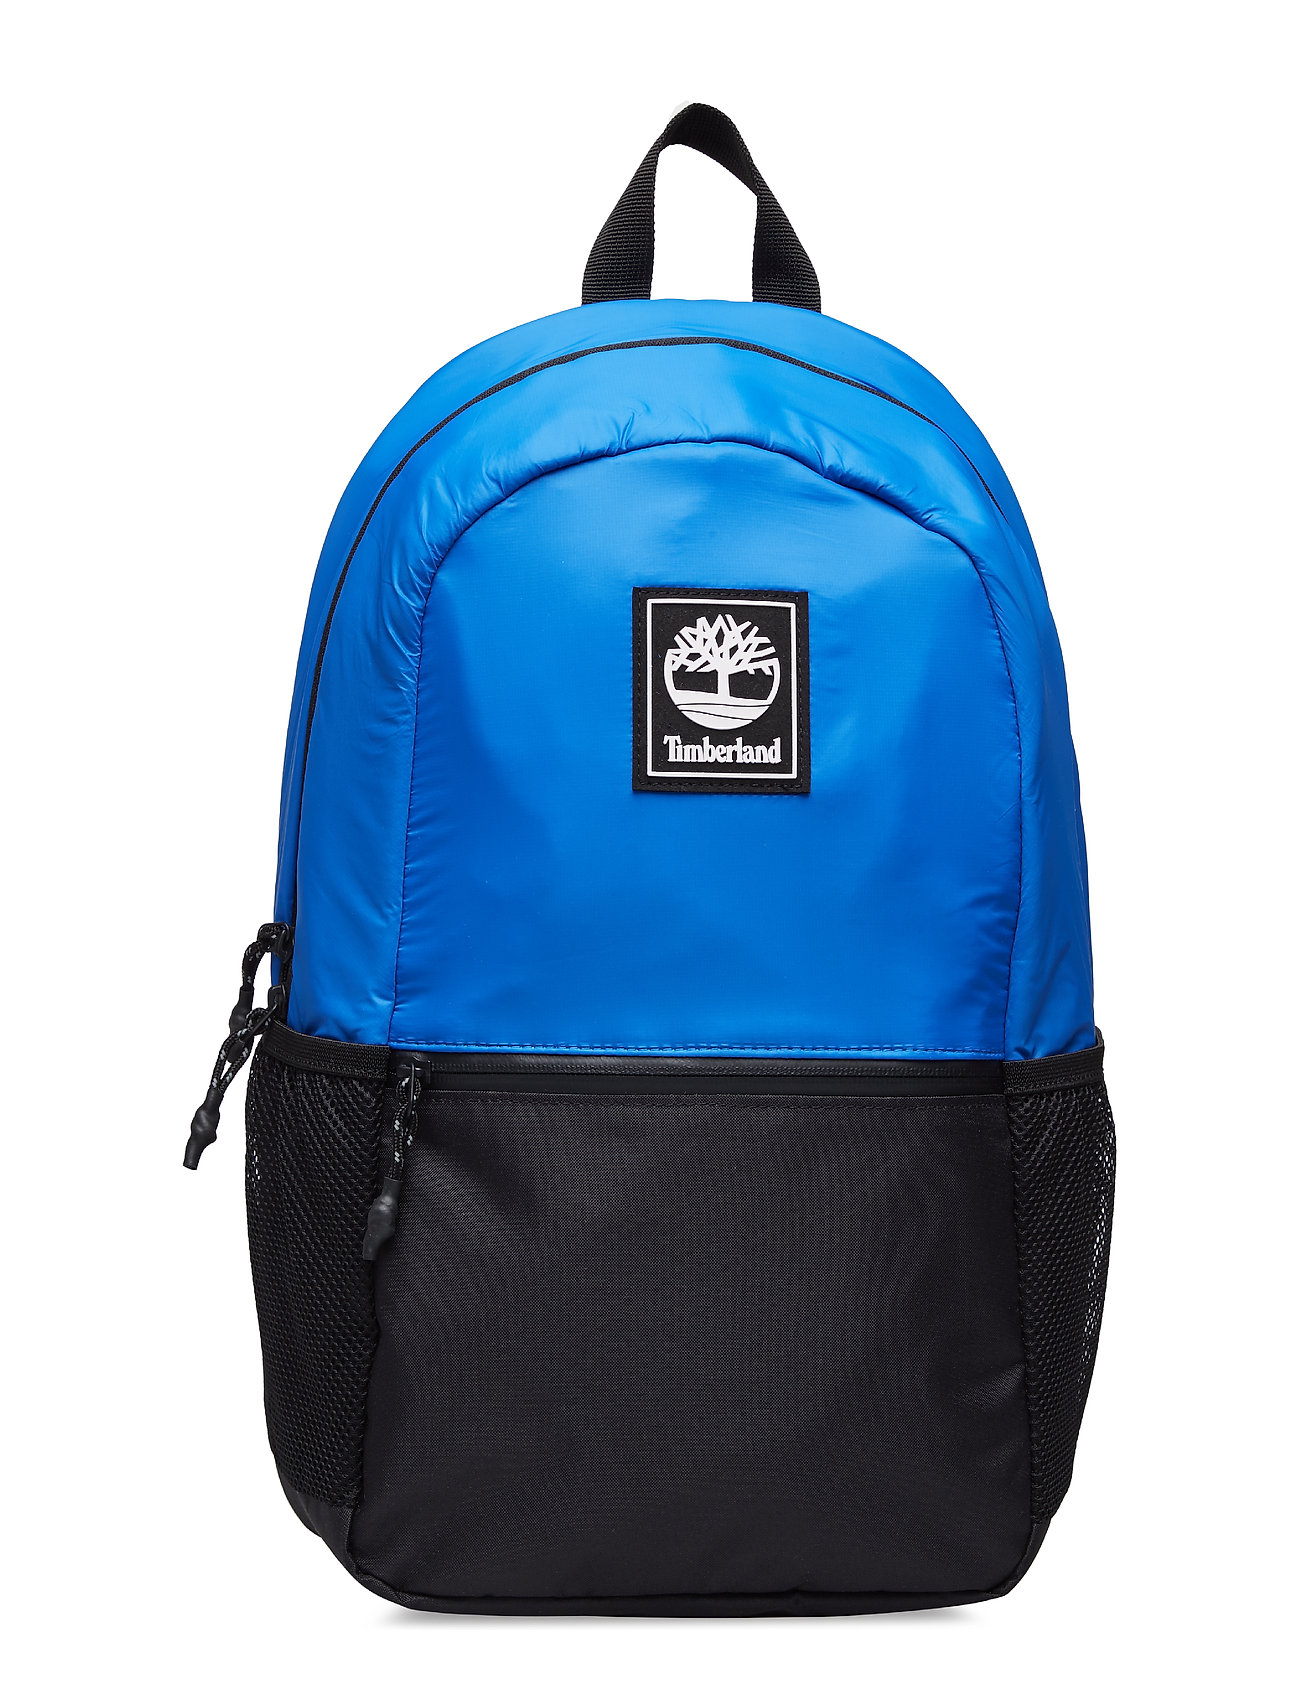 Timberland Recover Classic Backpack - STRONG BLUE